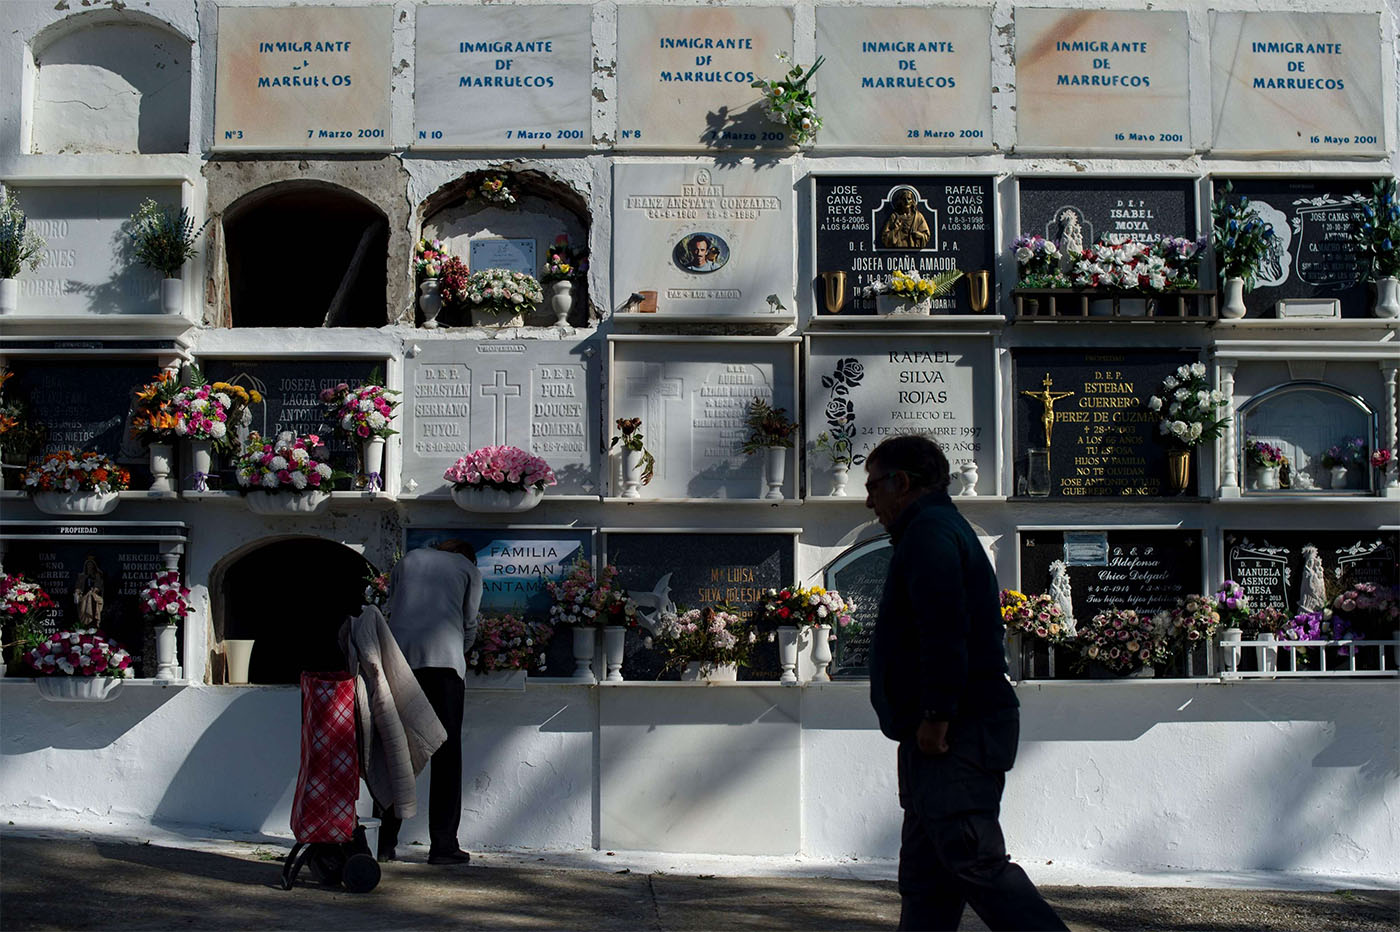 Rows of tombstones at Tarifa's cemetery mark where unnamed migrants are buried